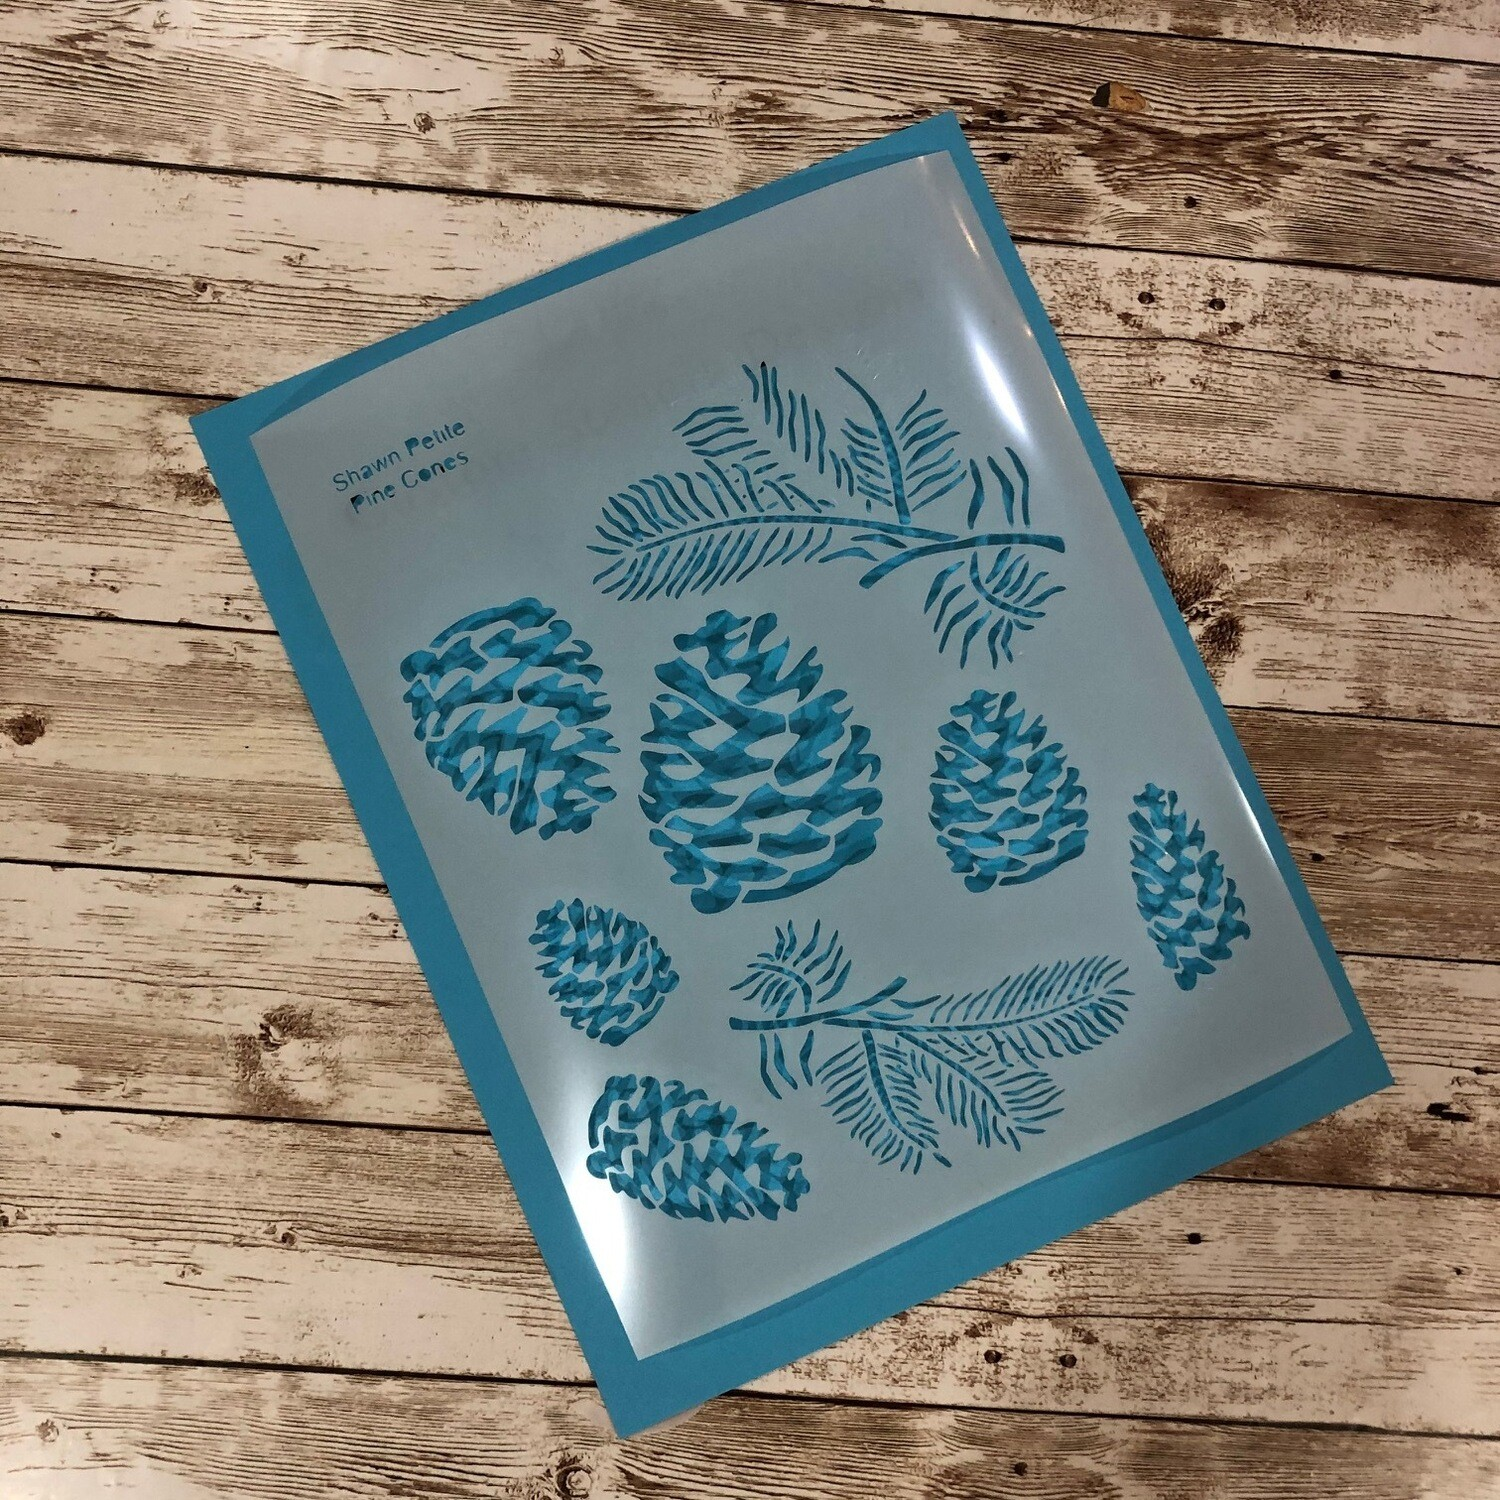 Pine Cones 8x10 clearance stencil